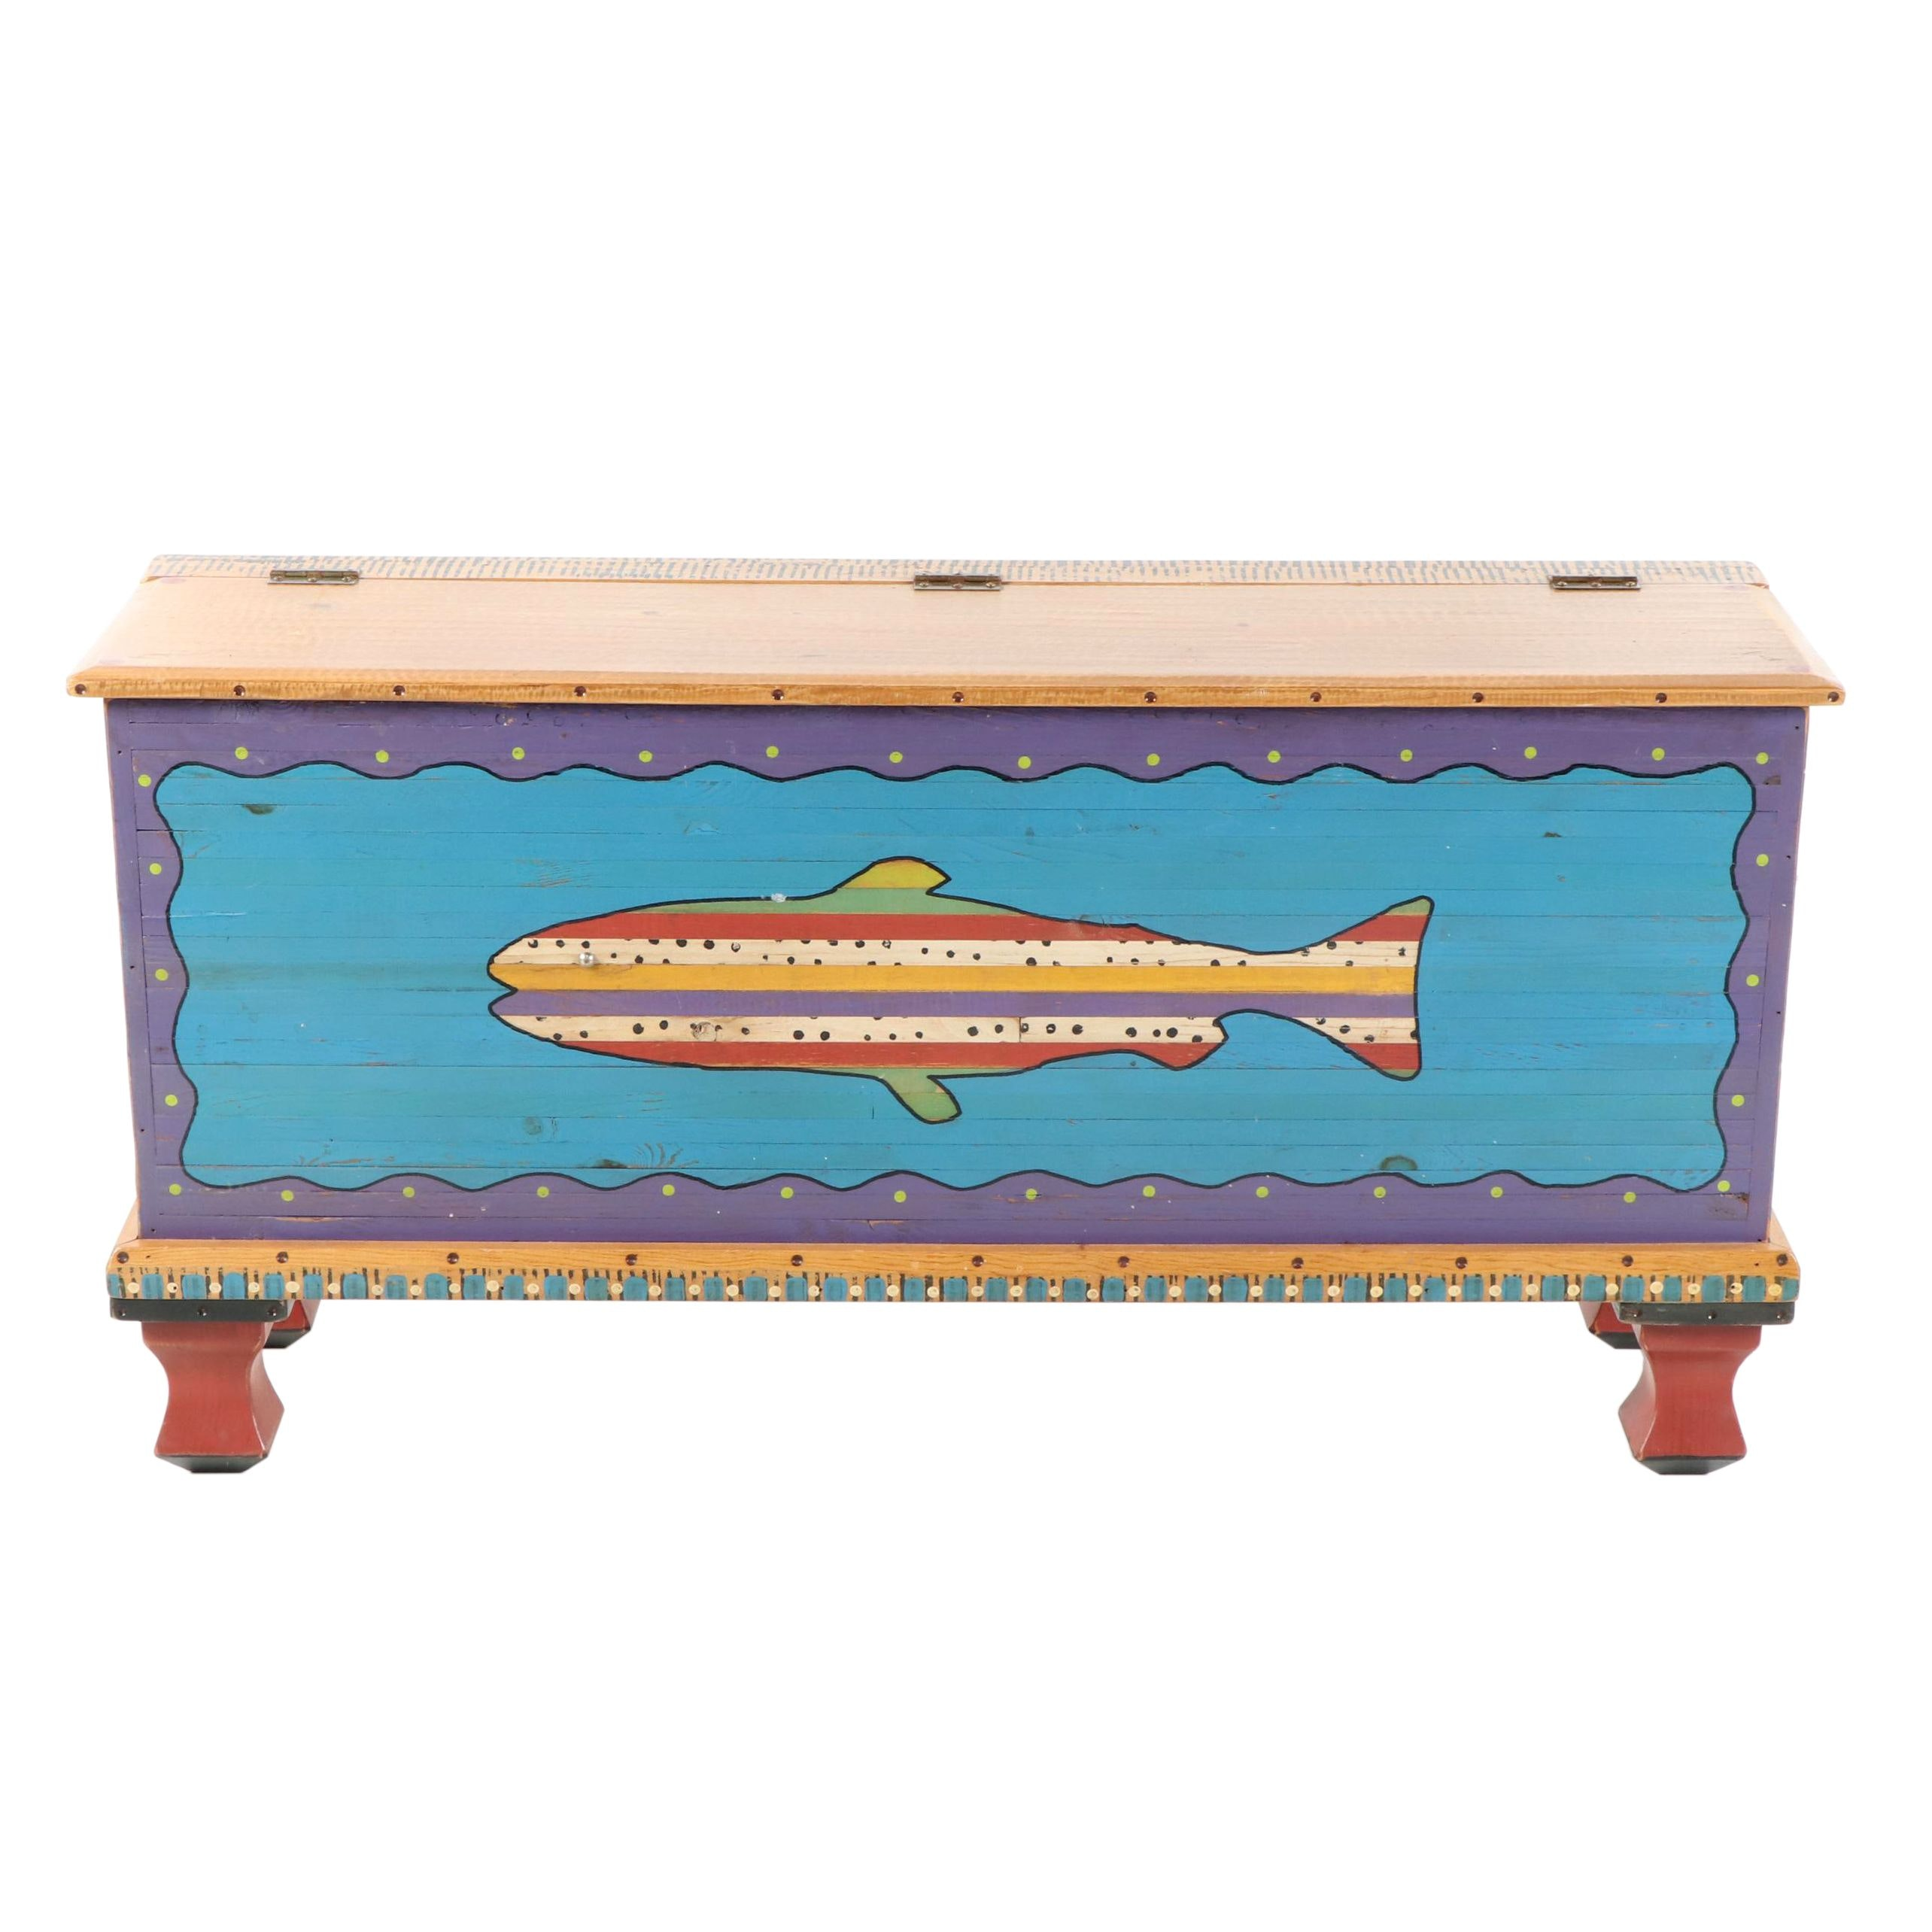 Contemporary Hand Painted Fish Trunk by Shoestring Creations